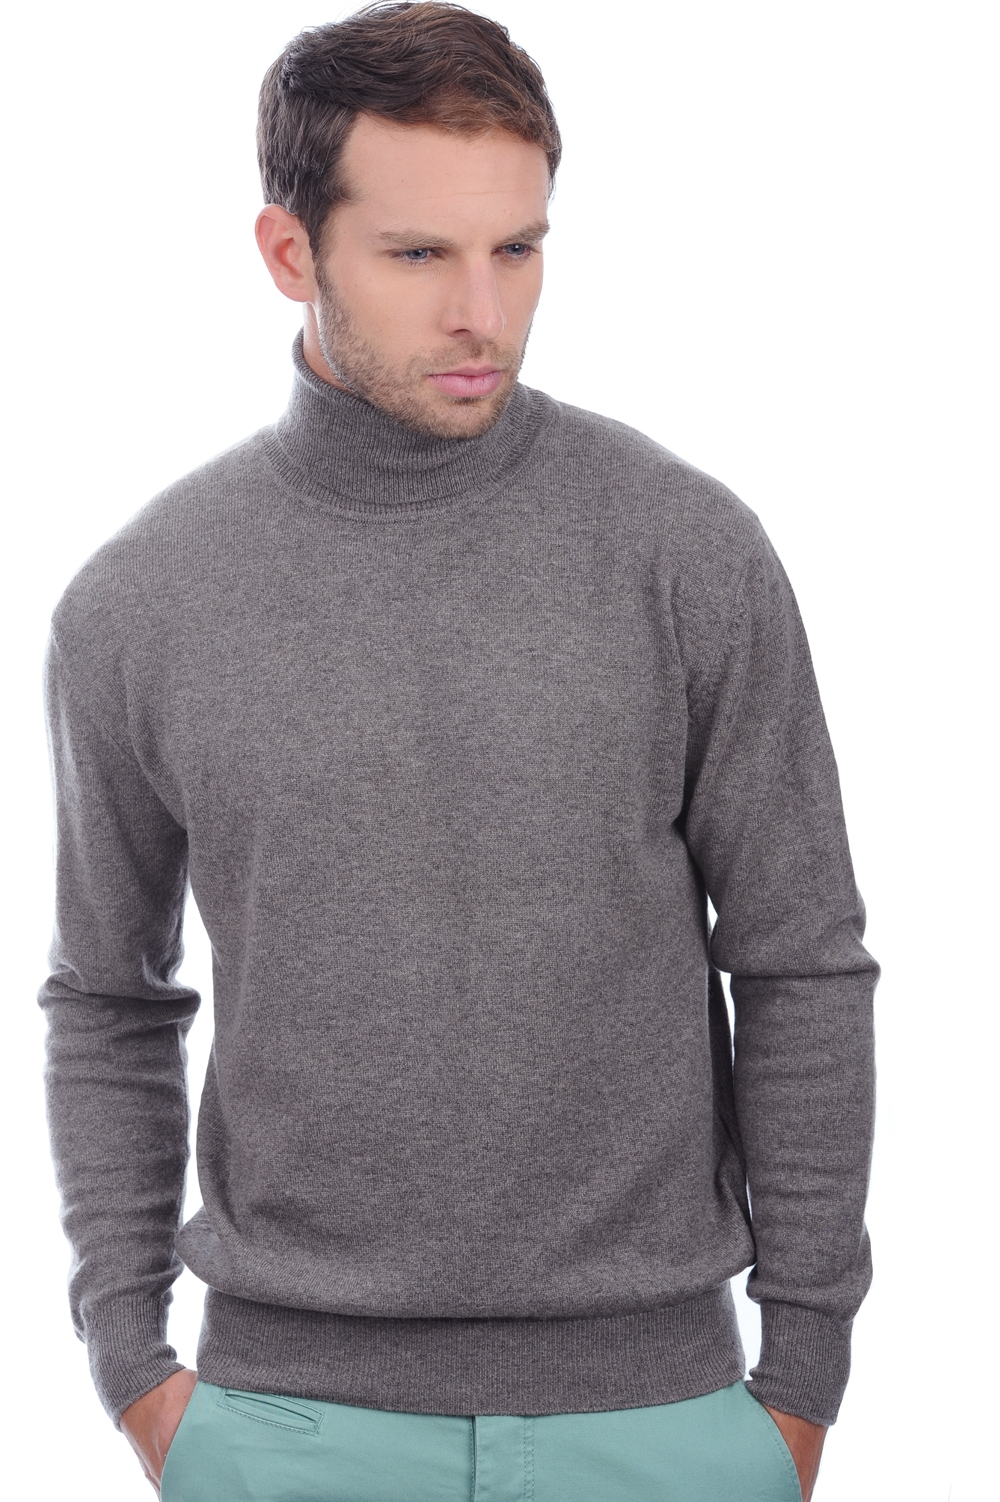 cachemire pull homme col roule edgar marmotte chine s